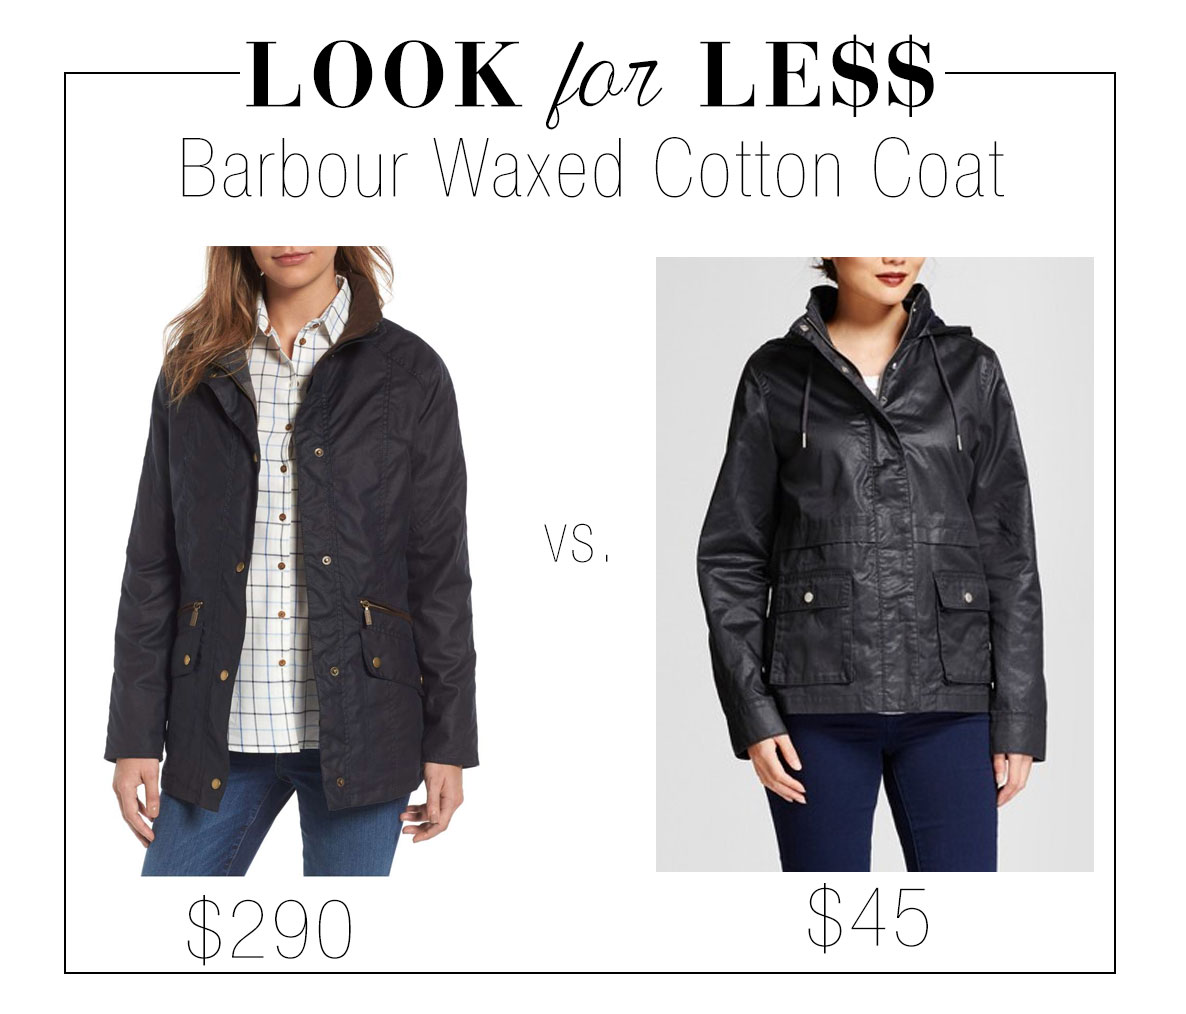 Get the look of Barbour's waxed cotton coat for less.